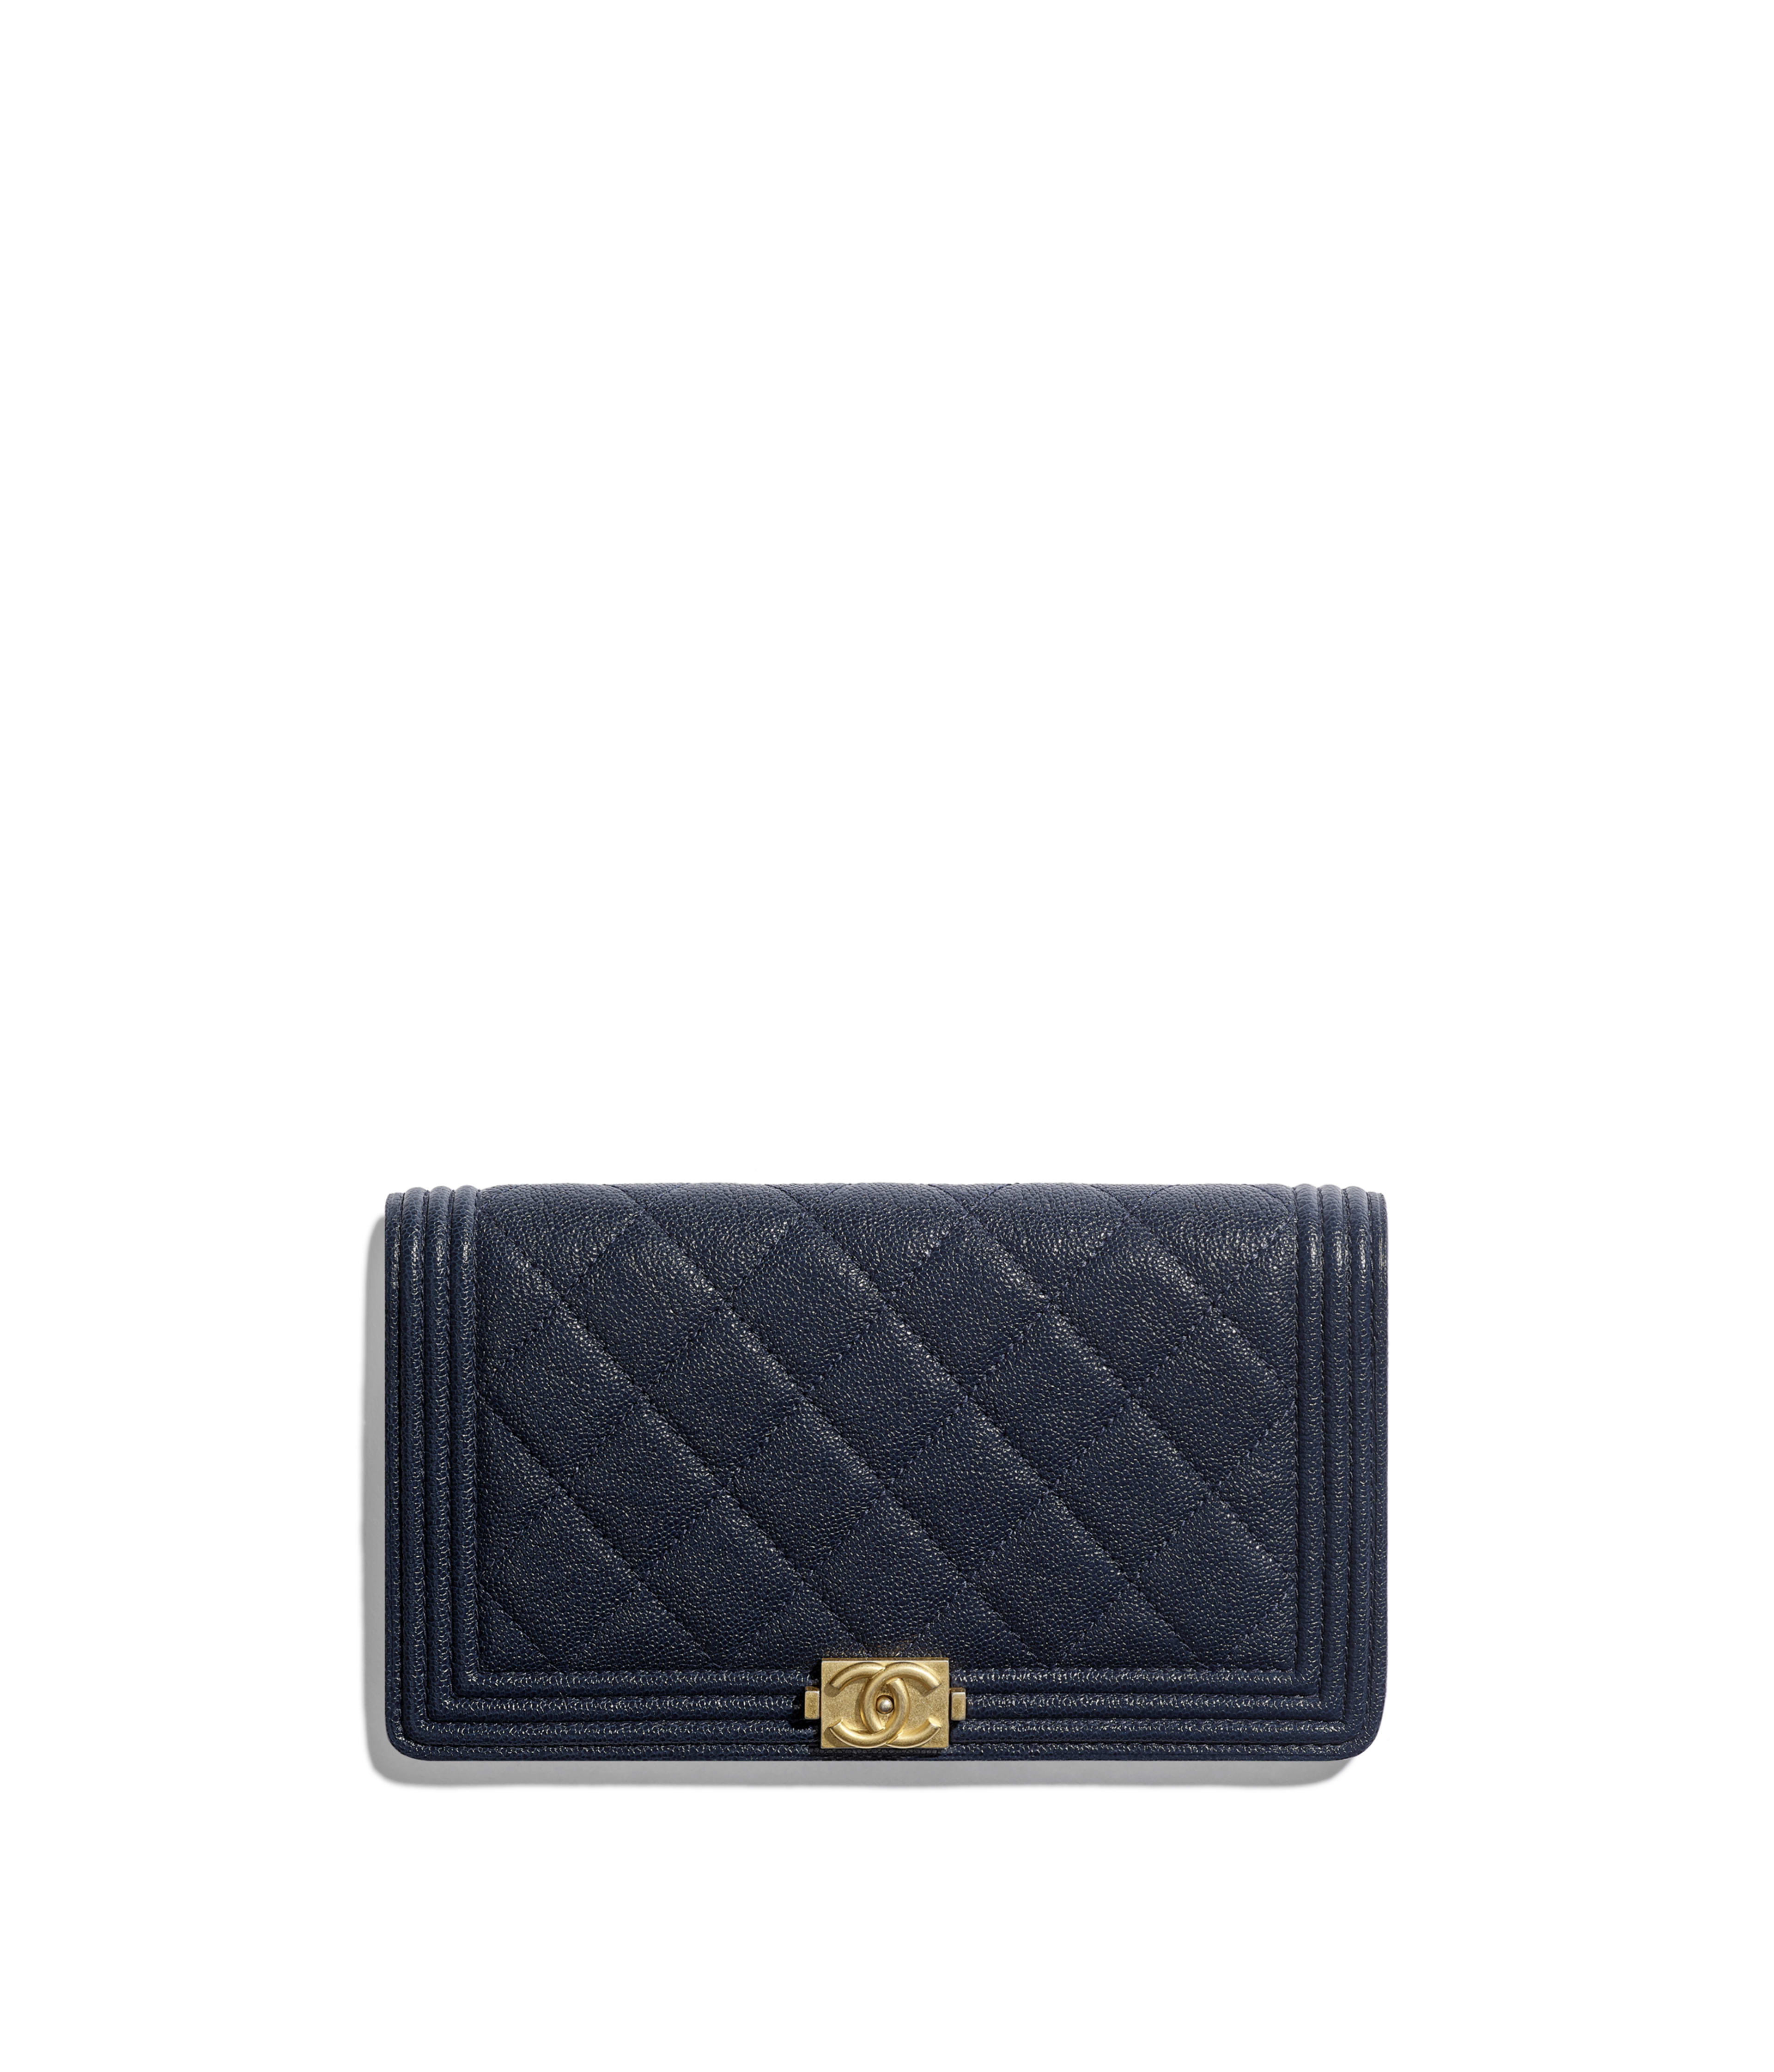 d041cbcf647204 Long Wallets Small Leather Goods Chanel. Chanel Boy Yen Wallet Quilted  Lambskin ...